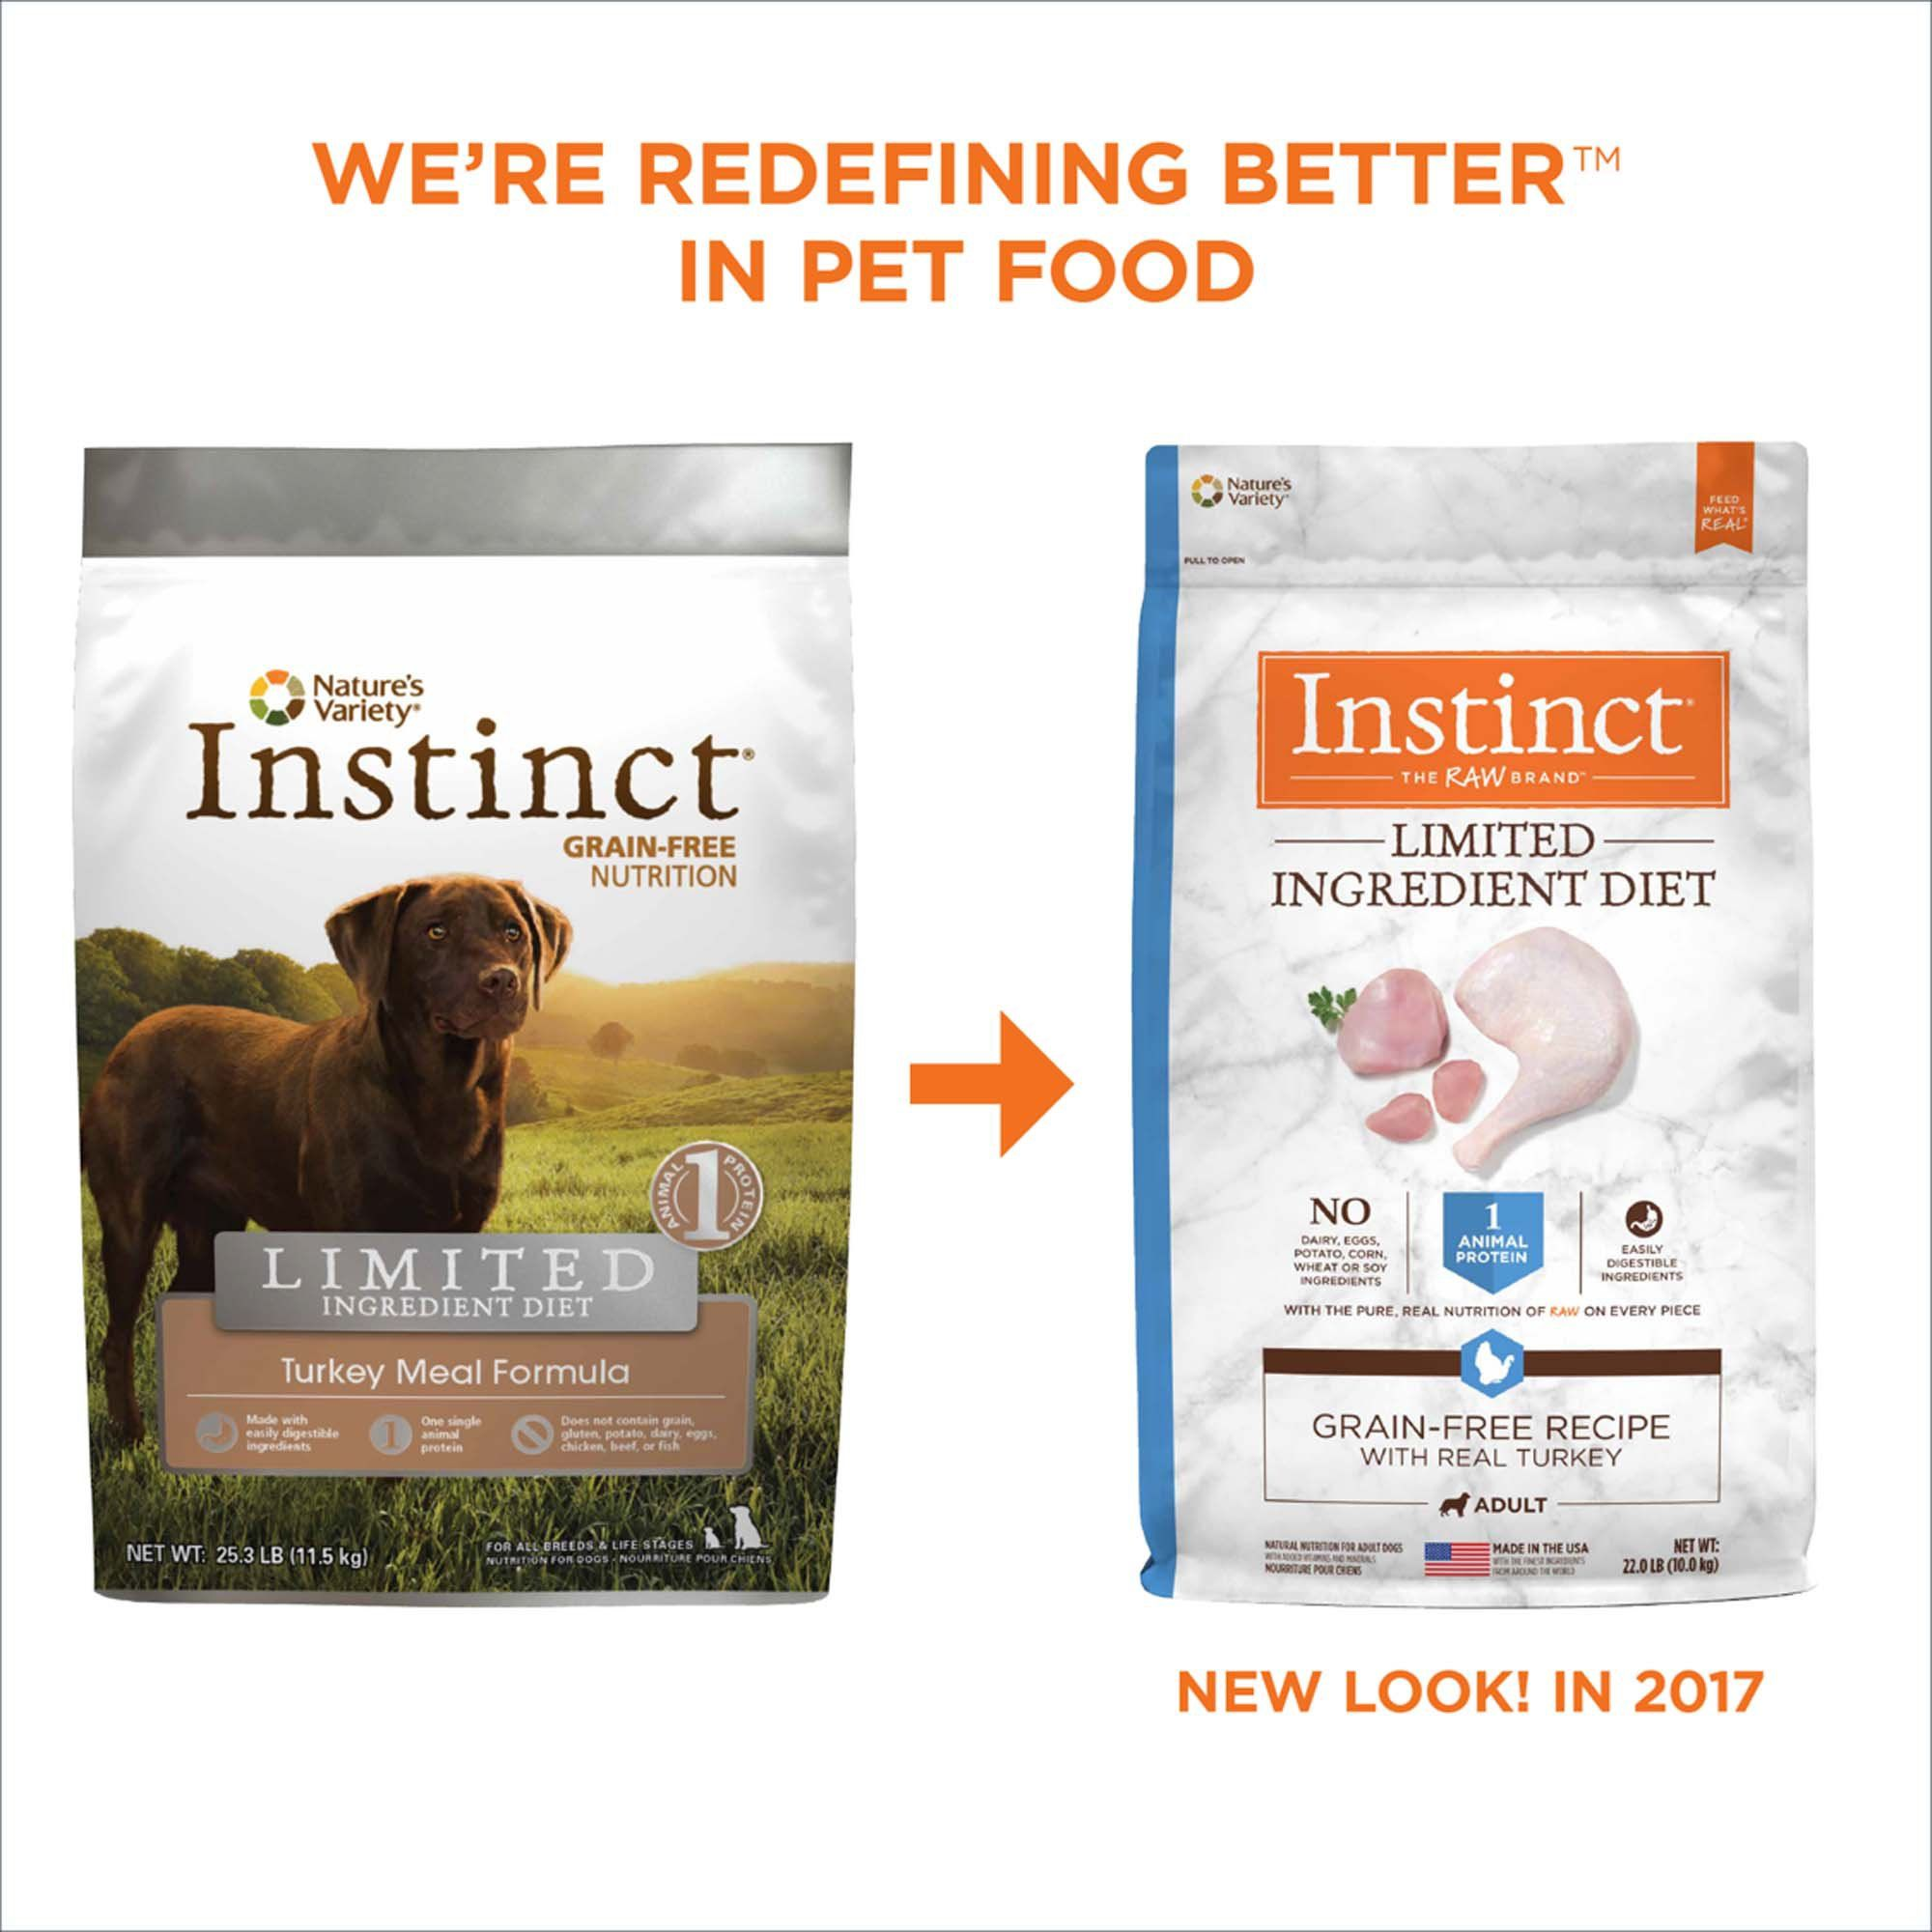 Instinct Limited Ingredient Diet Grain Free Recipe With Real